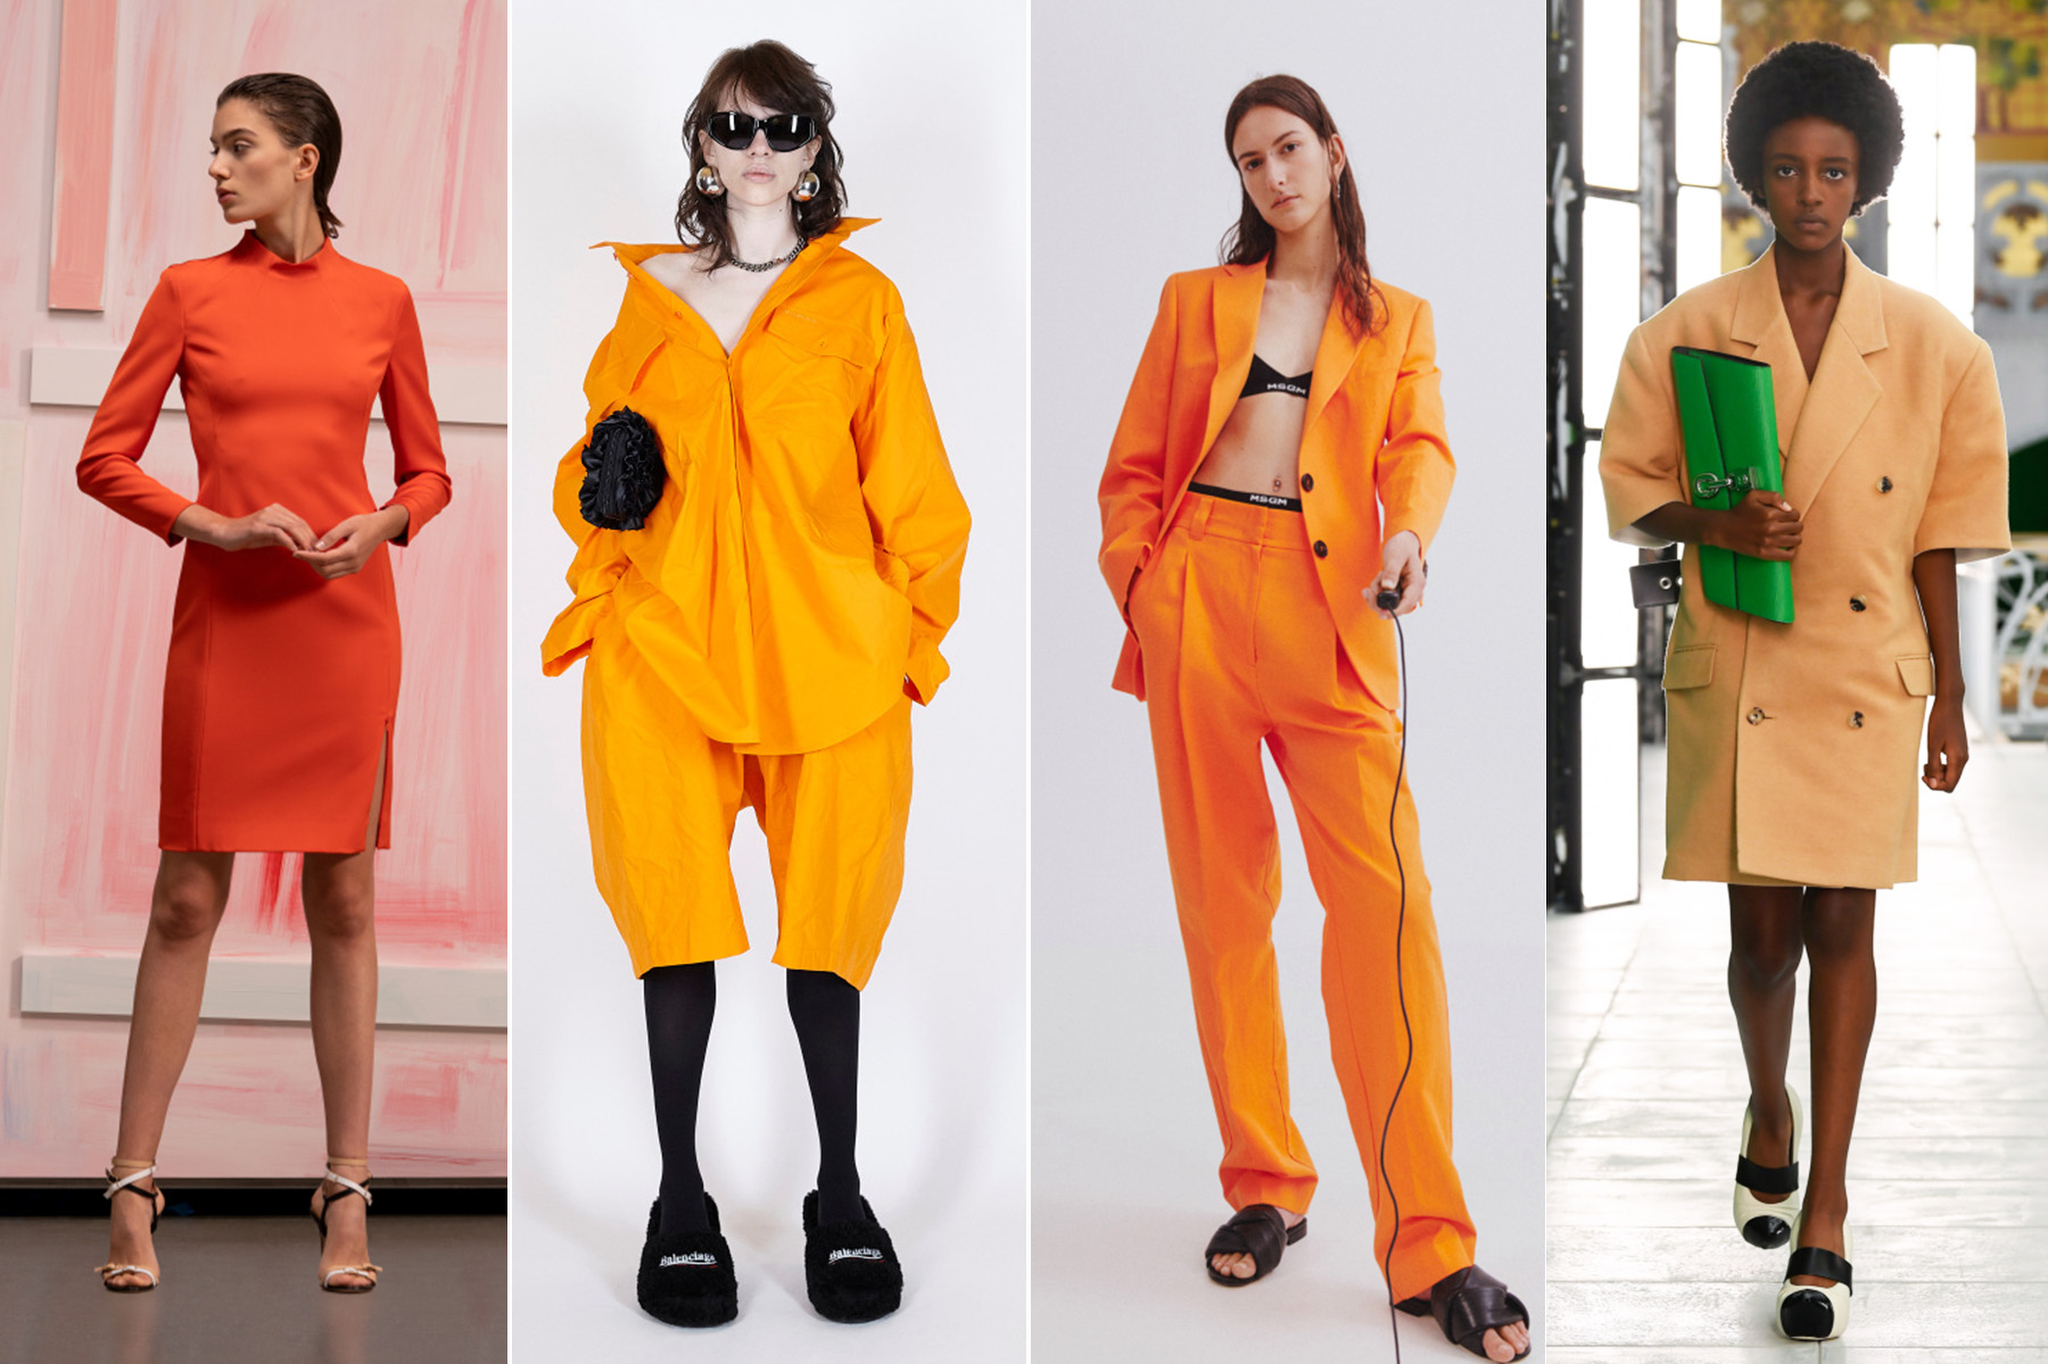 The 7 Biggest Spring 7 Fashion Trends From Europe [PHOTOS] – WWD